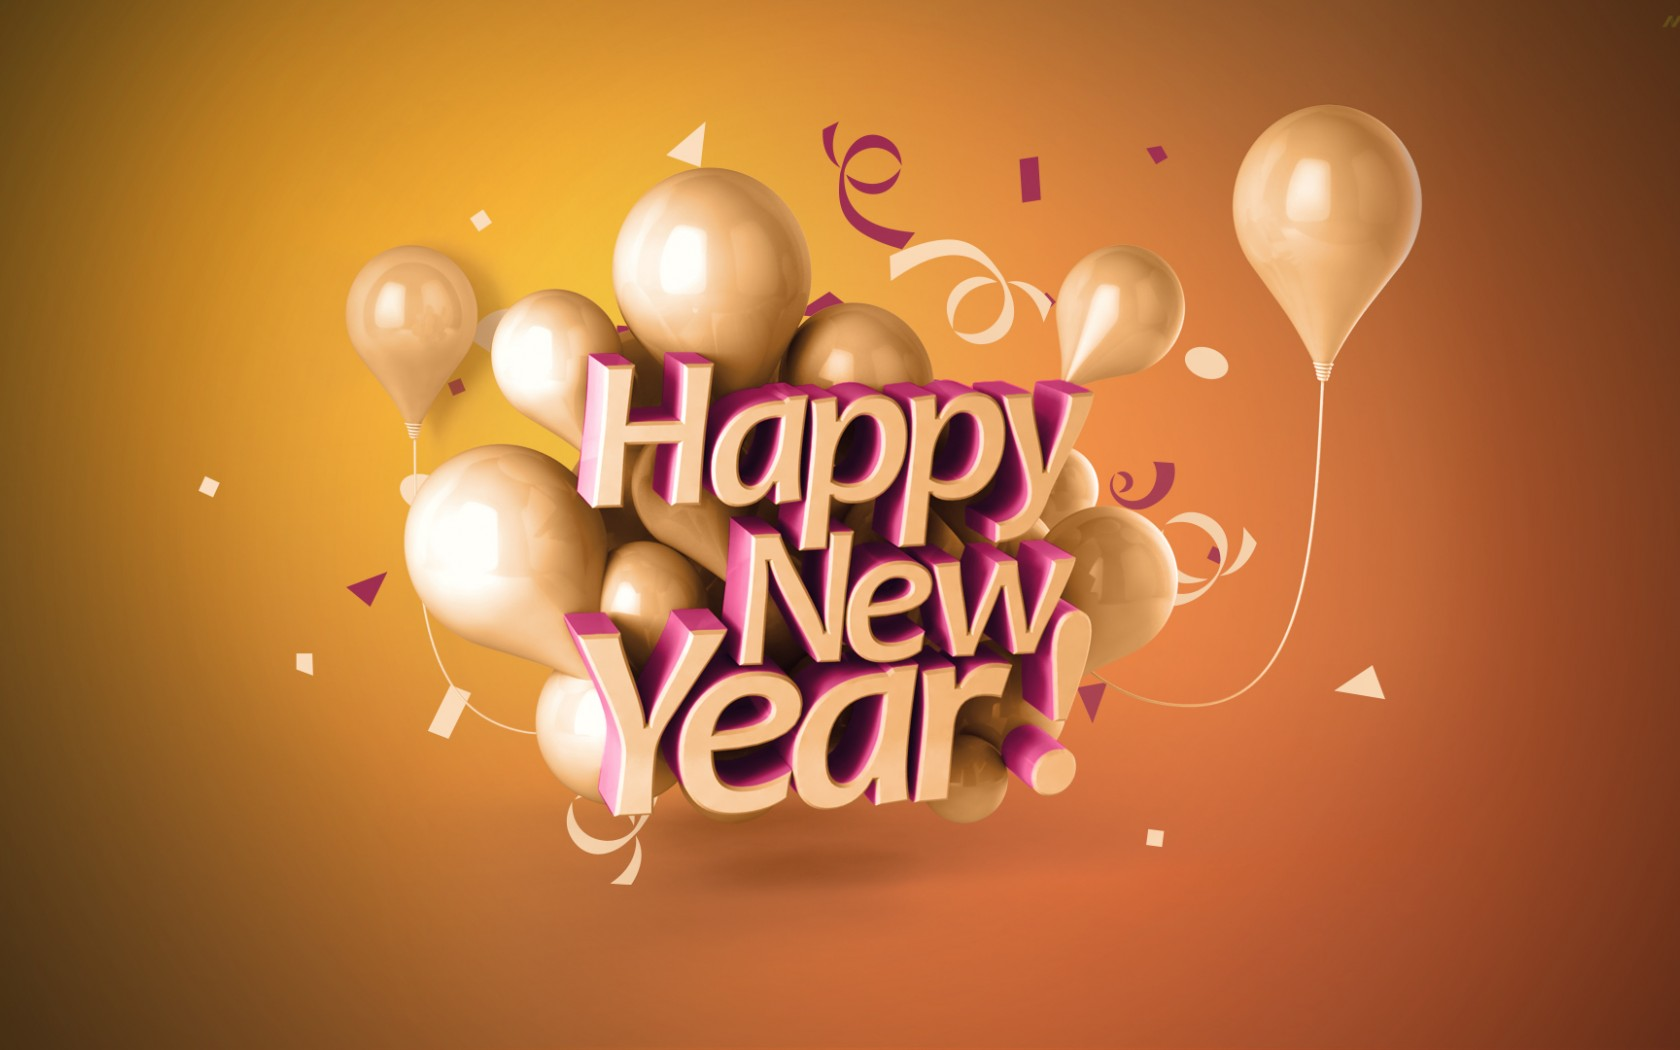 Happy new year 2020 hd wallpaper video download for whatsapp